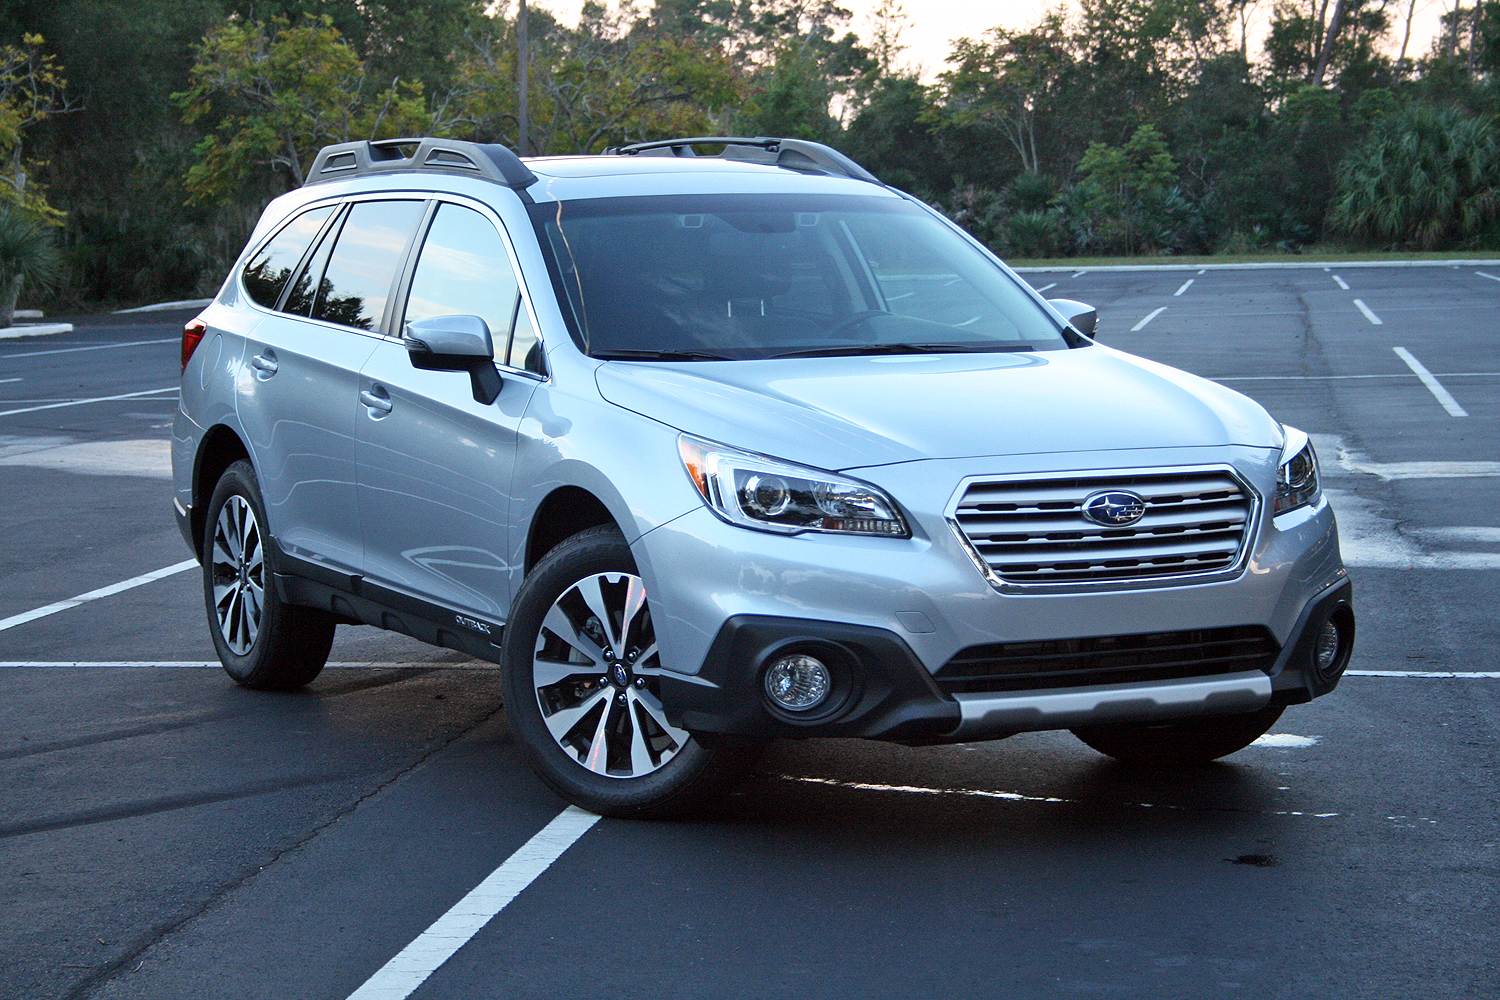 2016 subaru outback 3.6r limited – driven review - top speed